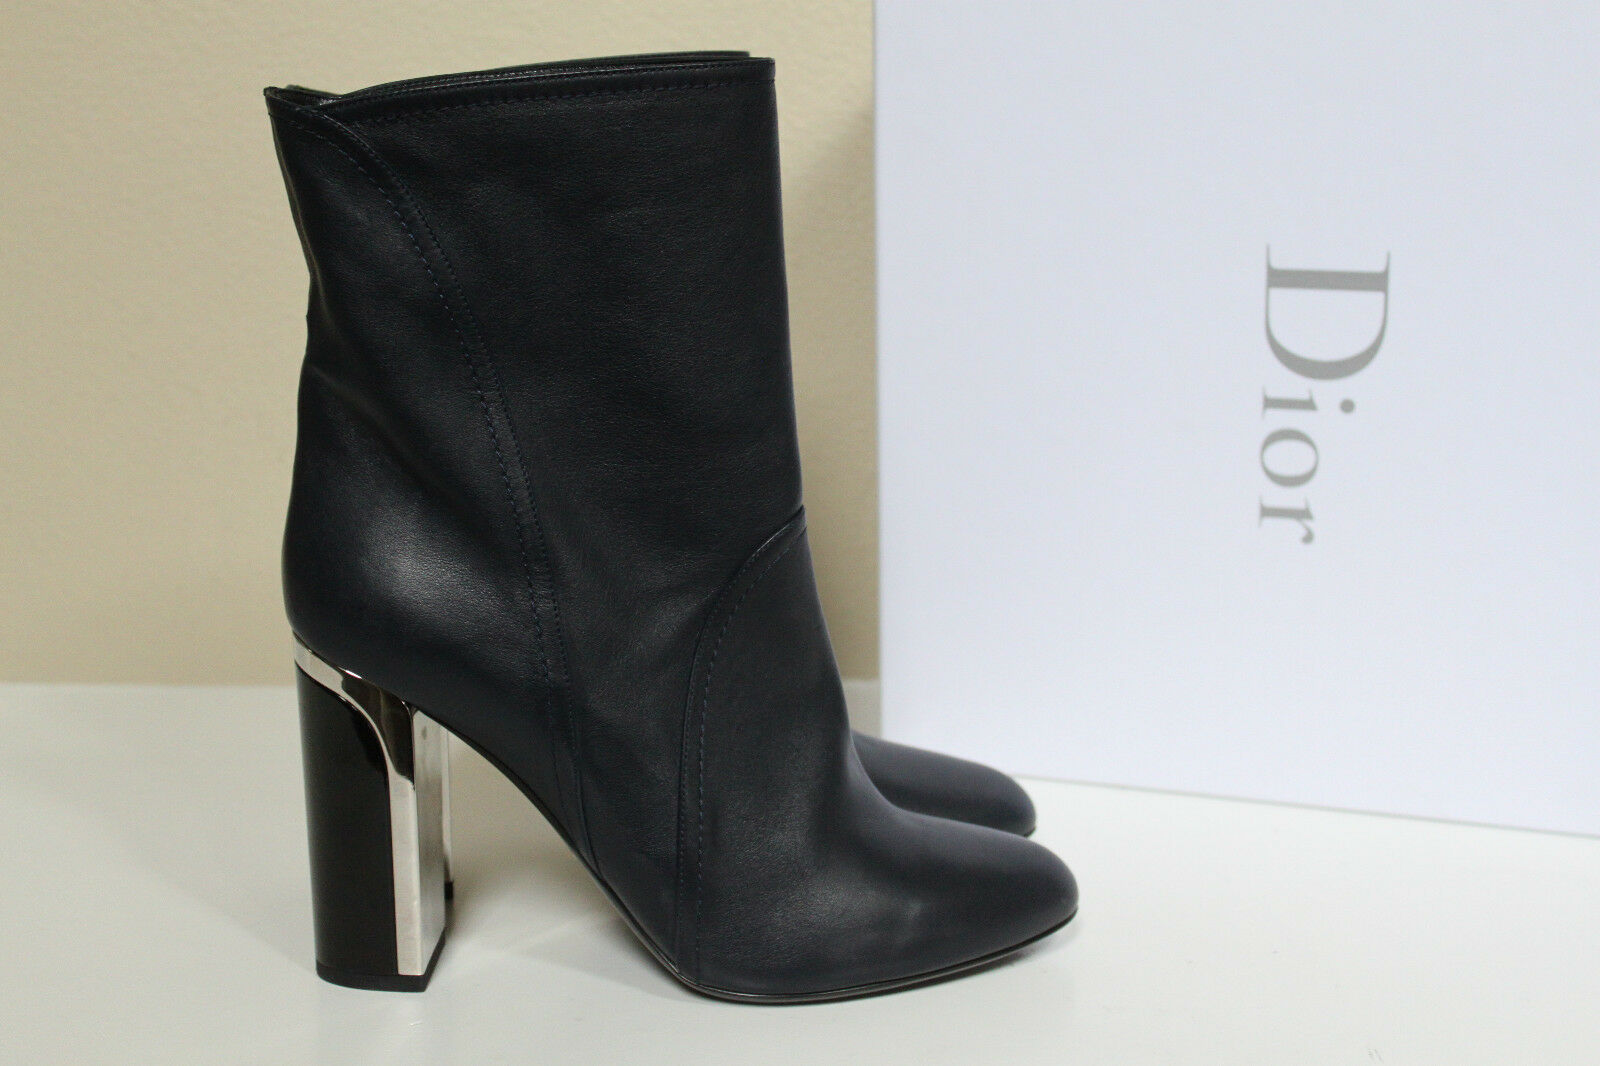 New sz 7 / 37.5 Christian Dior Marine Navy Blue Leather Ankle Boot Bootie Shoes